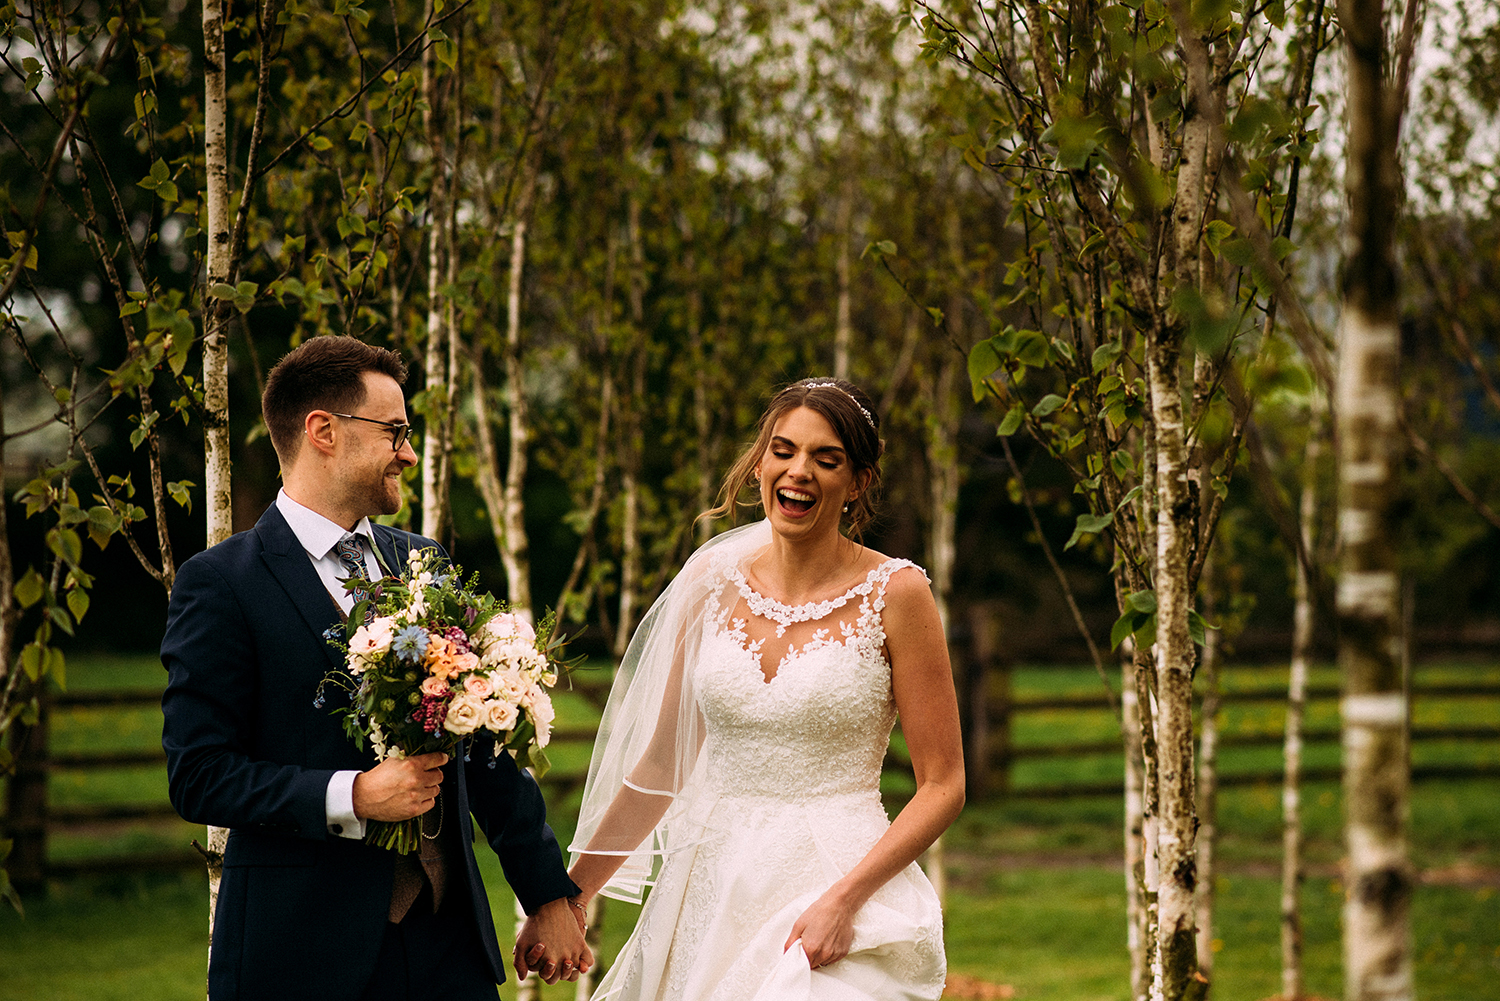 Bride and groom walking and laughing together at the Out barn wedding venue